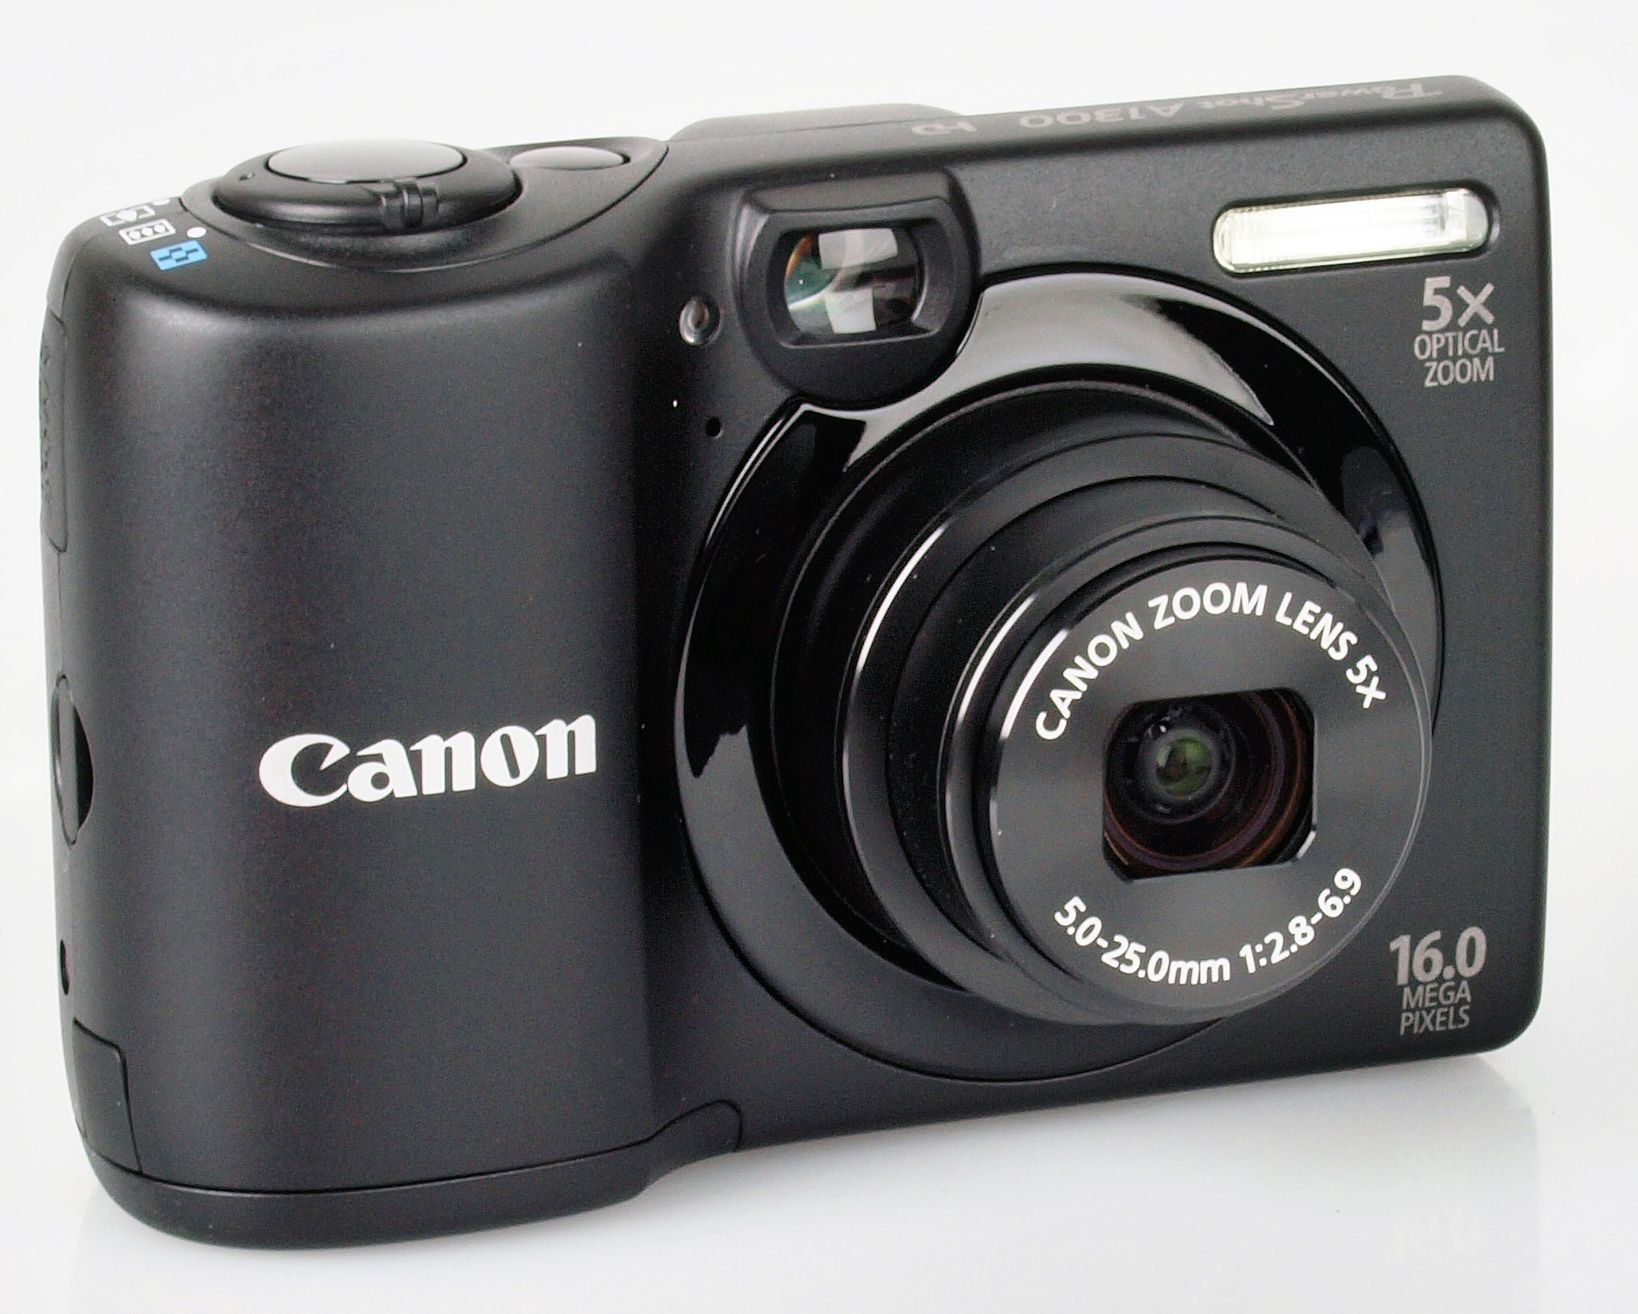 Canon Digital Camera Reviews | Canon PowerShot A1300 Digital ...